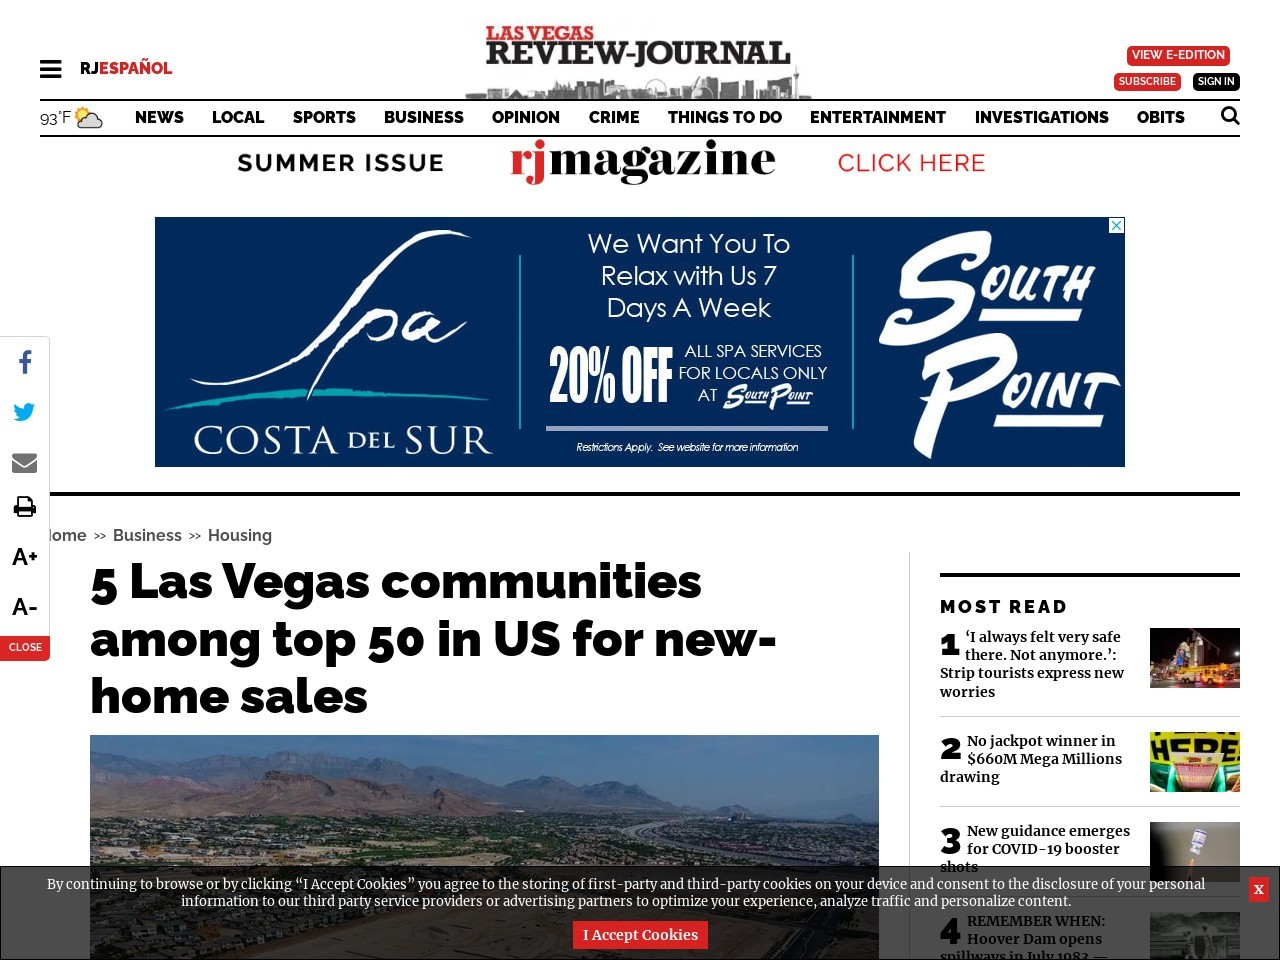 5 Las Vegas communities among top 50 in US for new-home sales